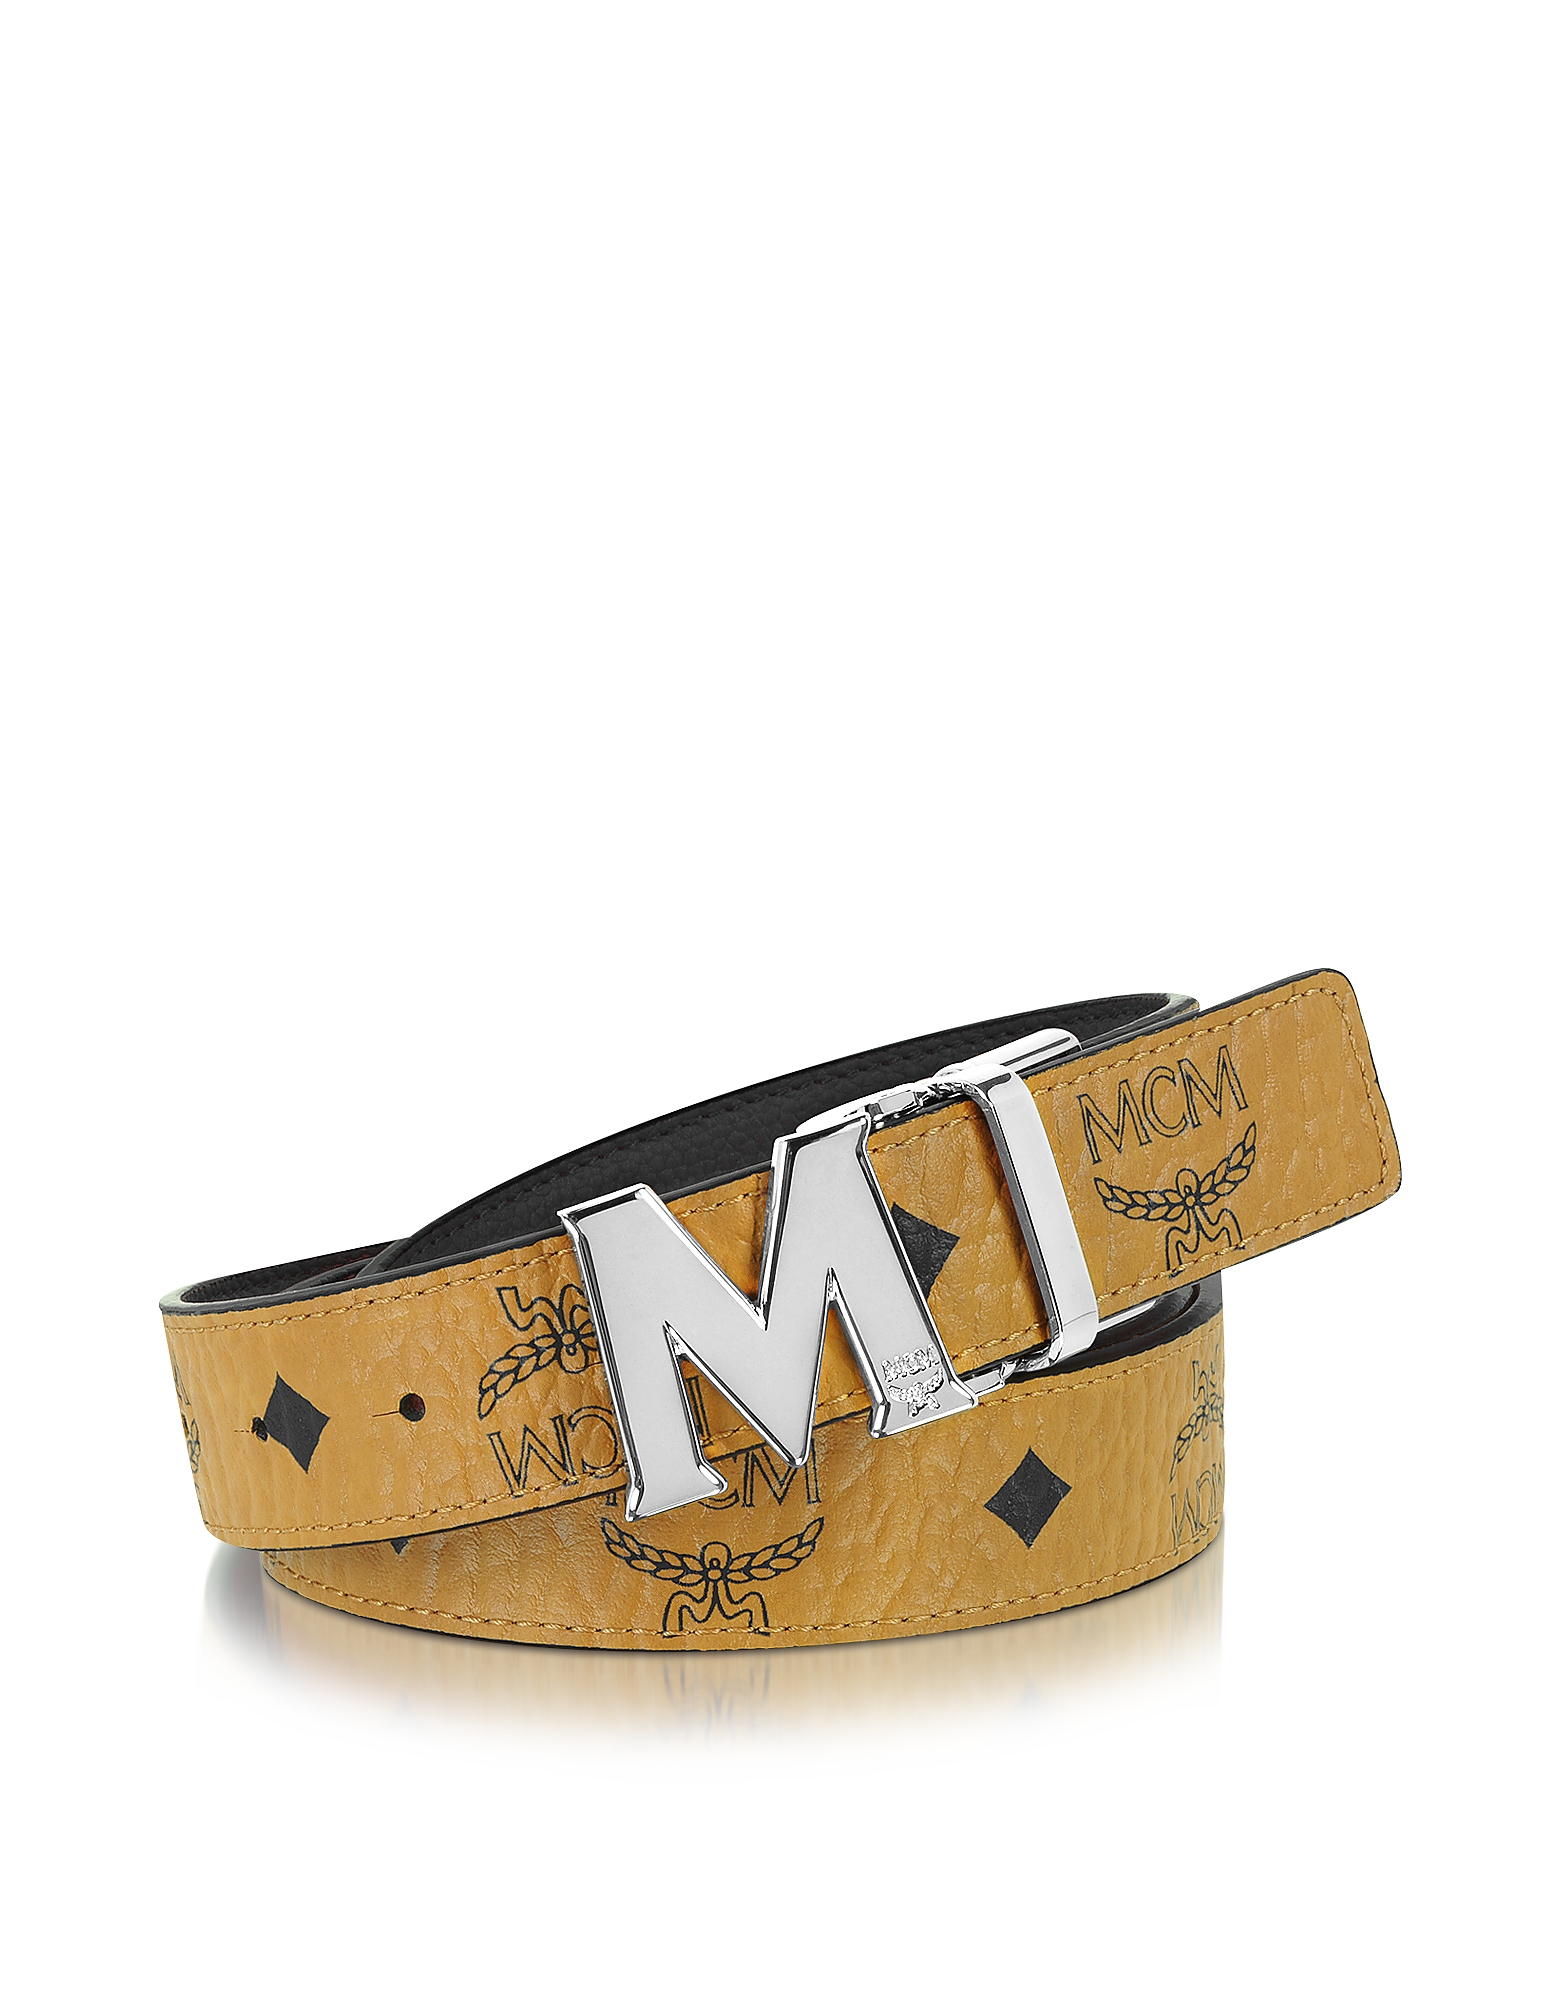 Color Visetos Cognac/Black Coated Canvas Reversible Belt